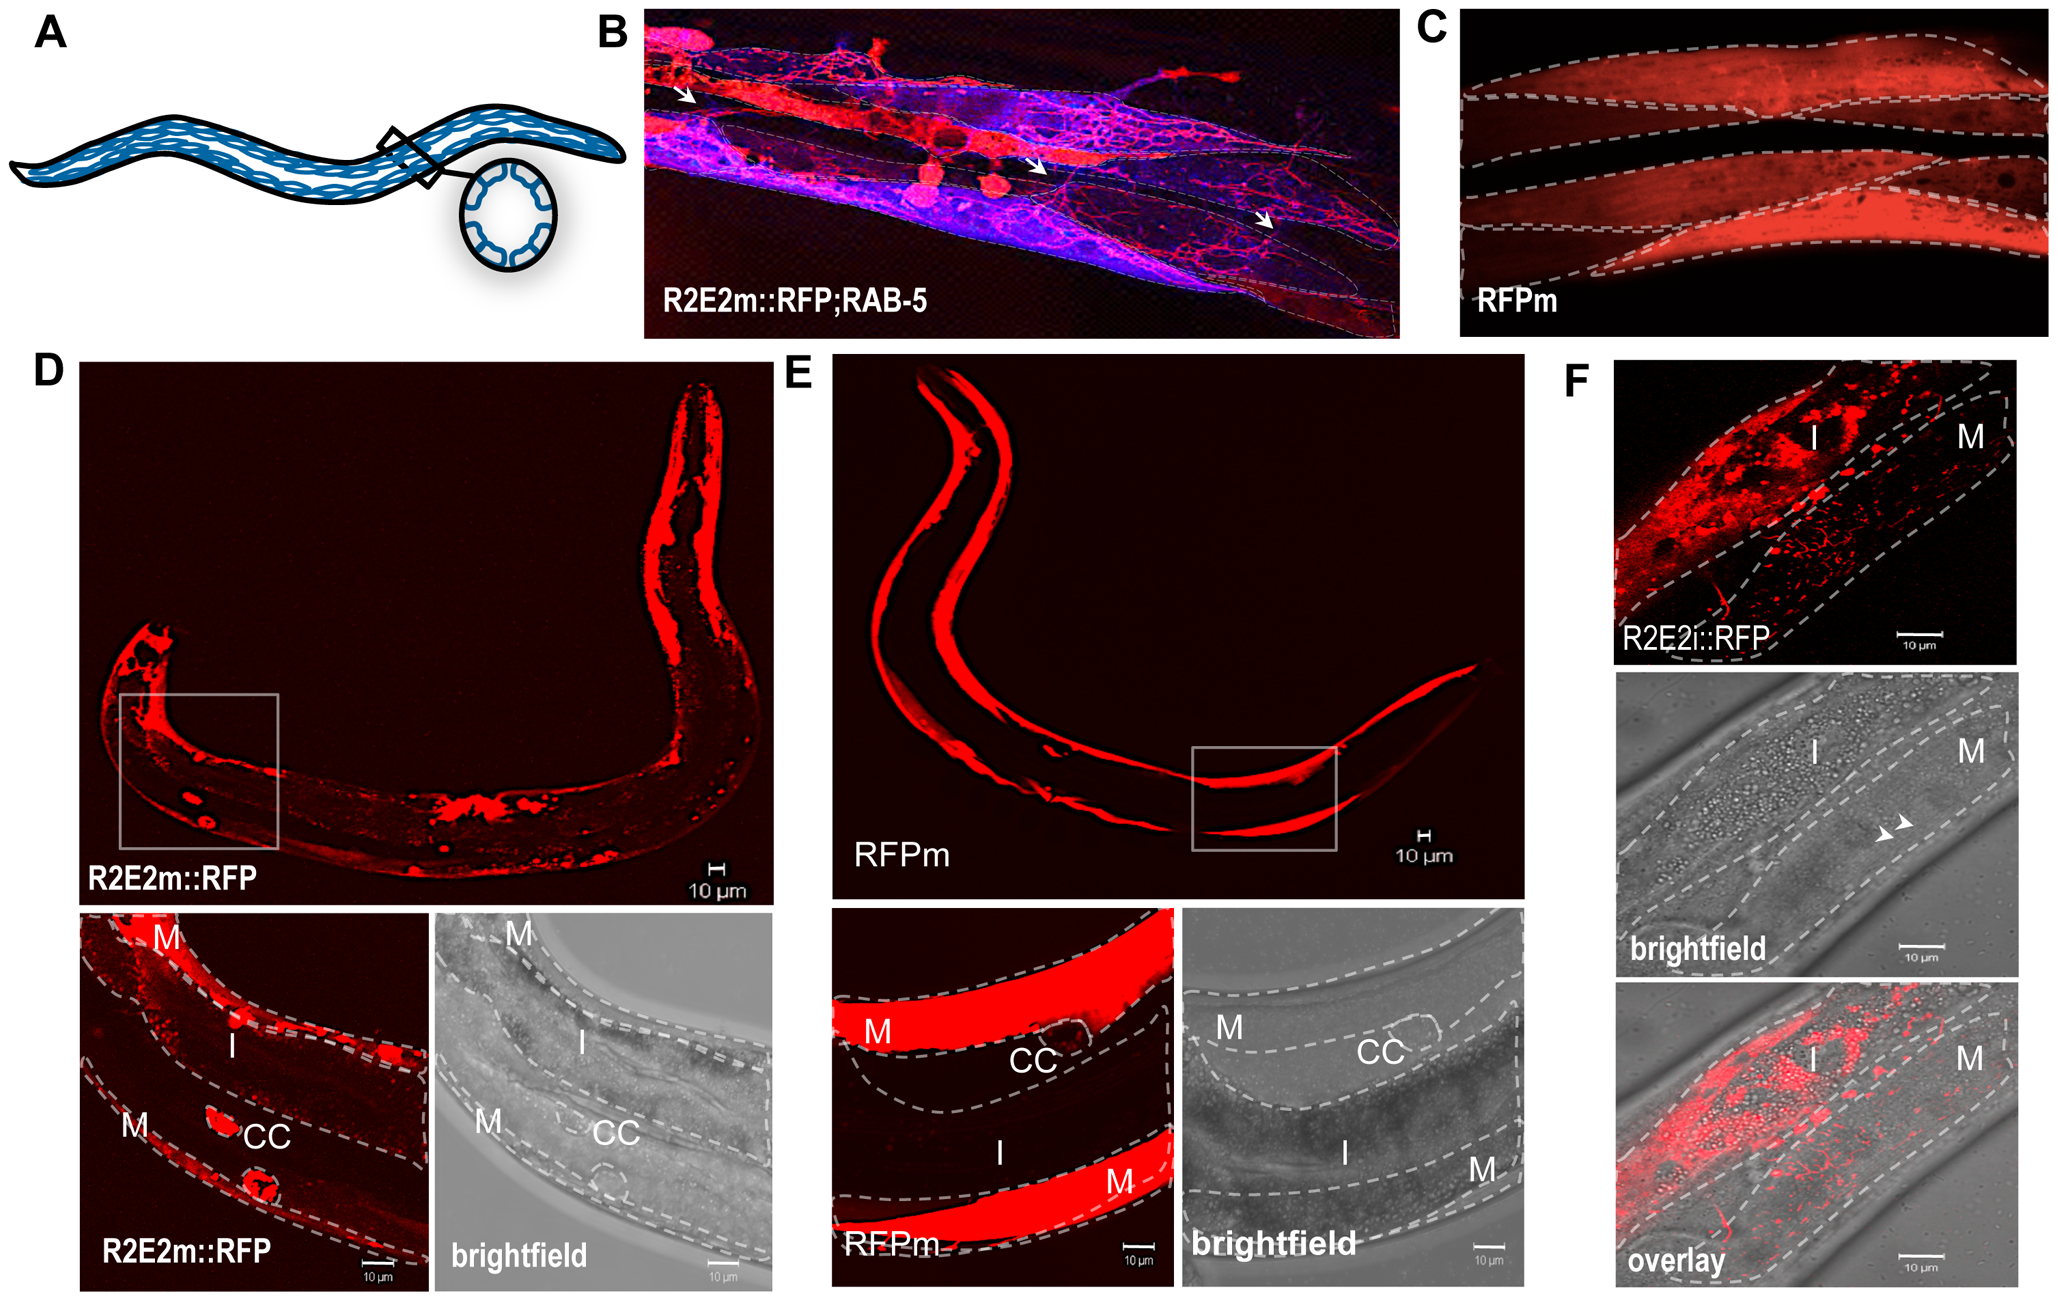 The prion domain spreads between cells and tissues in <i>C. elegans</i> by vesicular transport.